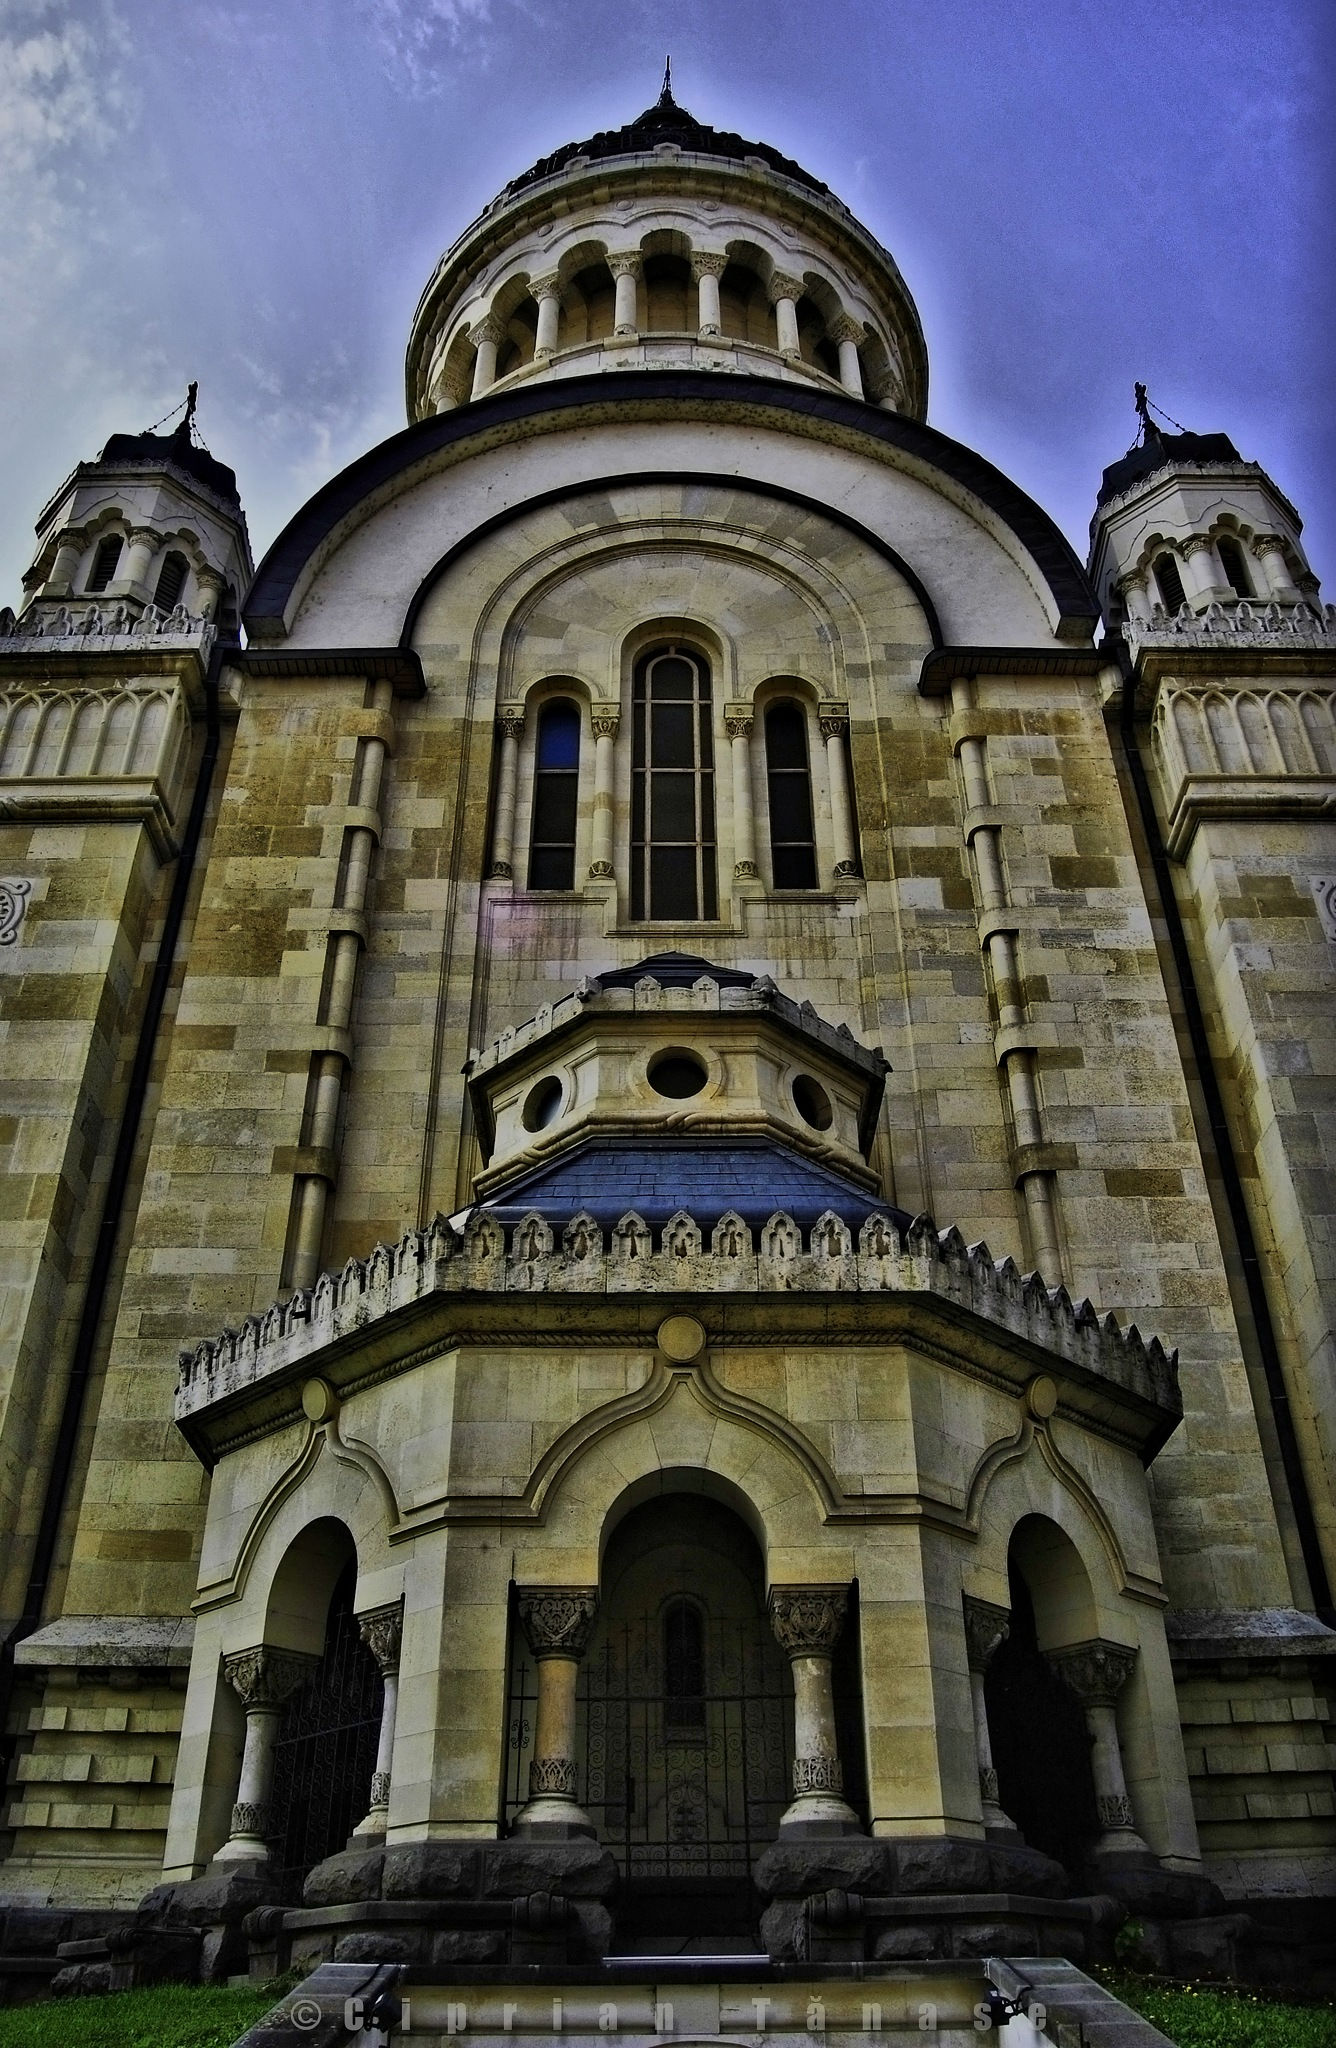 Dormition of the Theotokos Cathedral by Ciprian Tănase